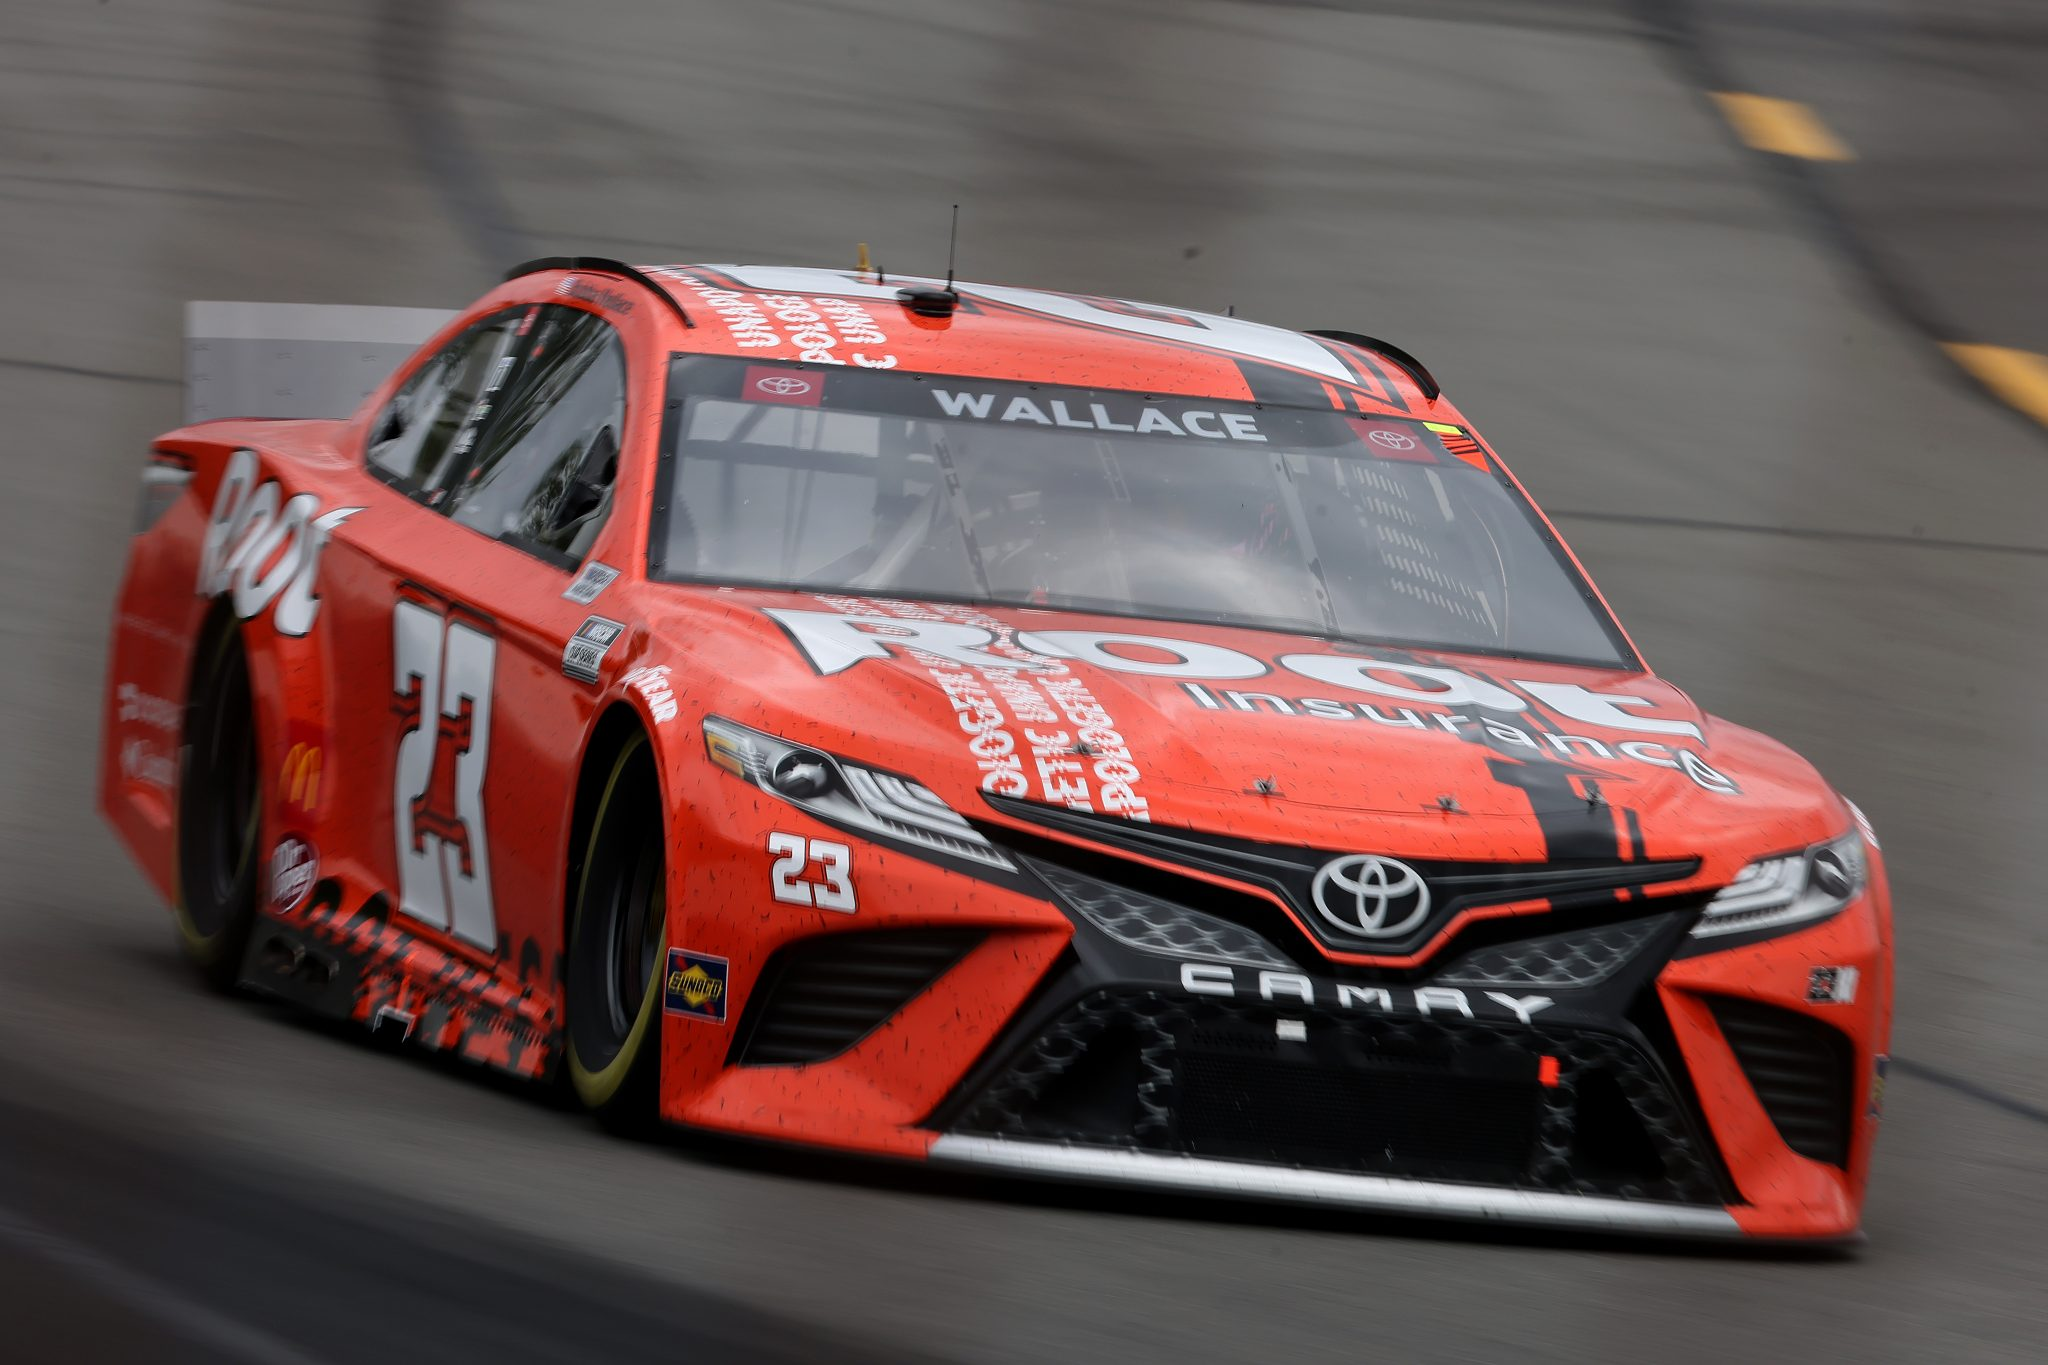 LONG POND, PENNSYLVANIA - JUNE 26: Bubba Wallace, driver of the #23 Root Insurance Toyota, drives during the NASCAR Cup Series Pocono Organics CBD 325 at Pocono Raceway on June 26, 2021 in Long Pond, Pennsylvania. (Photo by James Gilbert/Getty Images)   Getty Images